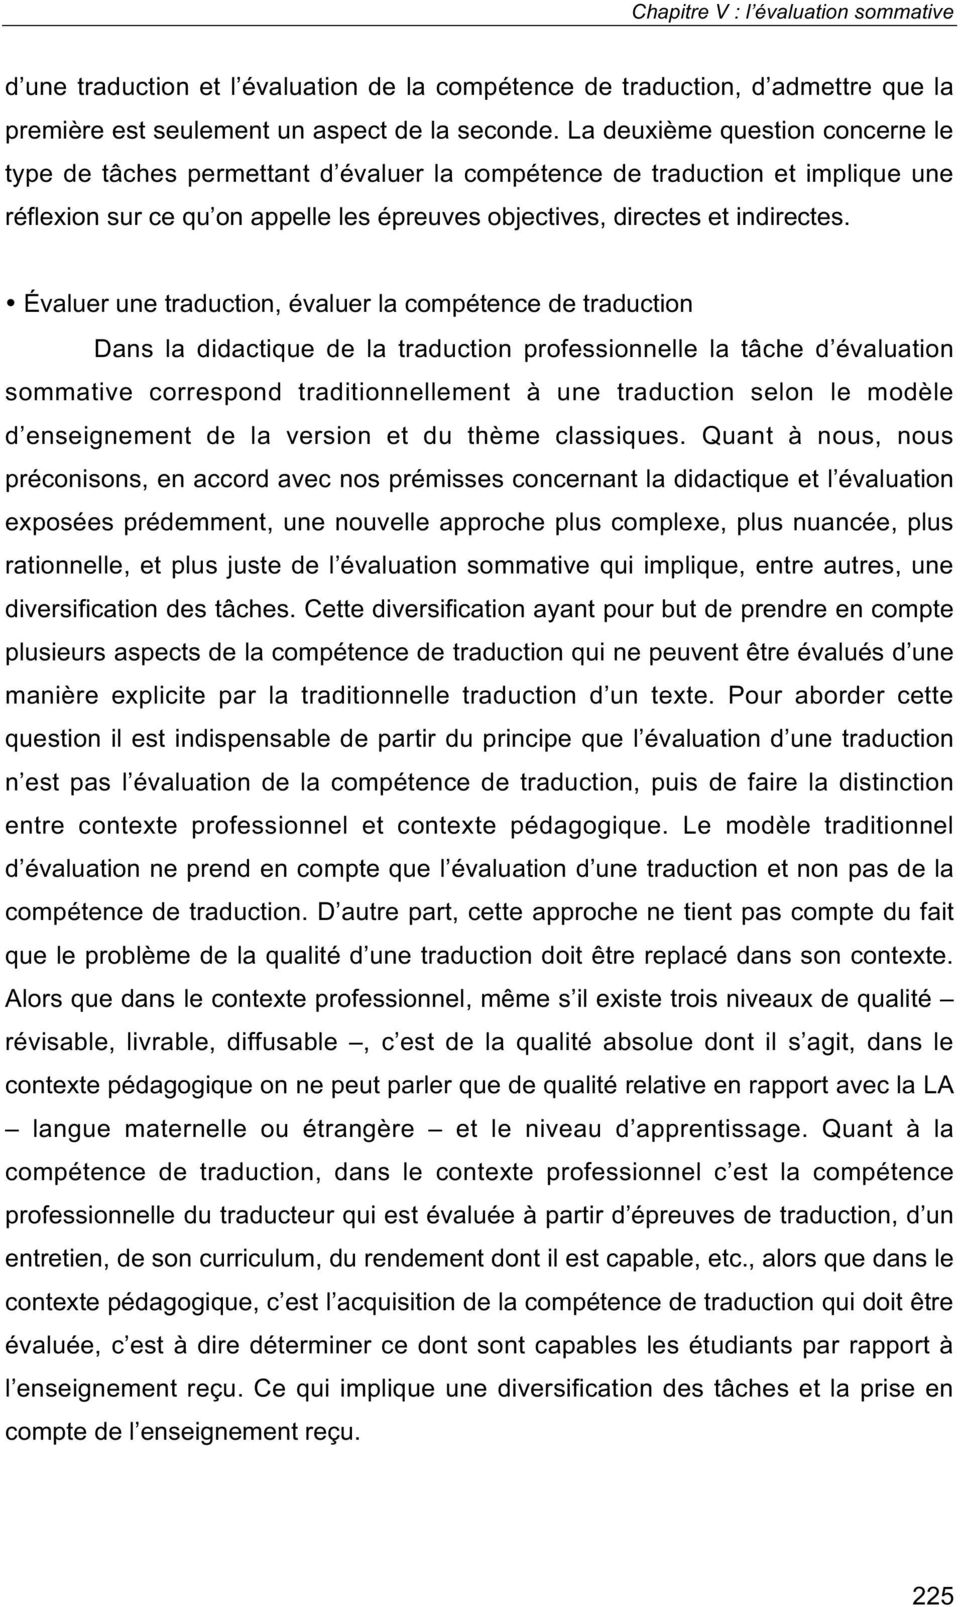 Évaluer une traduction, évaluer la compétence de traduction Dans la didactique de la traduction professionnelle la tâche d évaluation sommative correspond traditionnellement à une traduction selon le